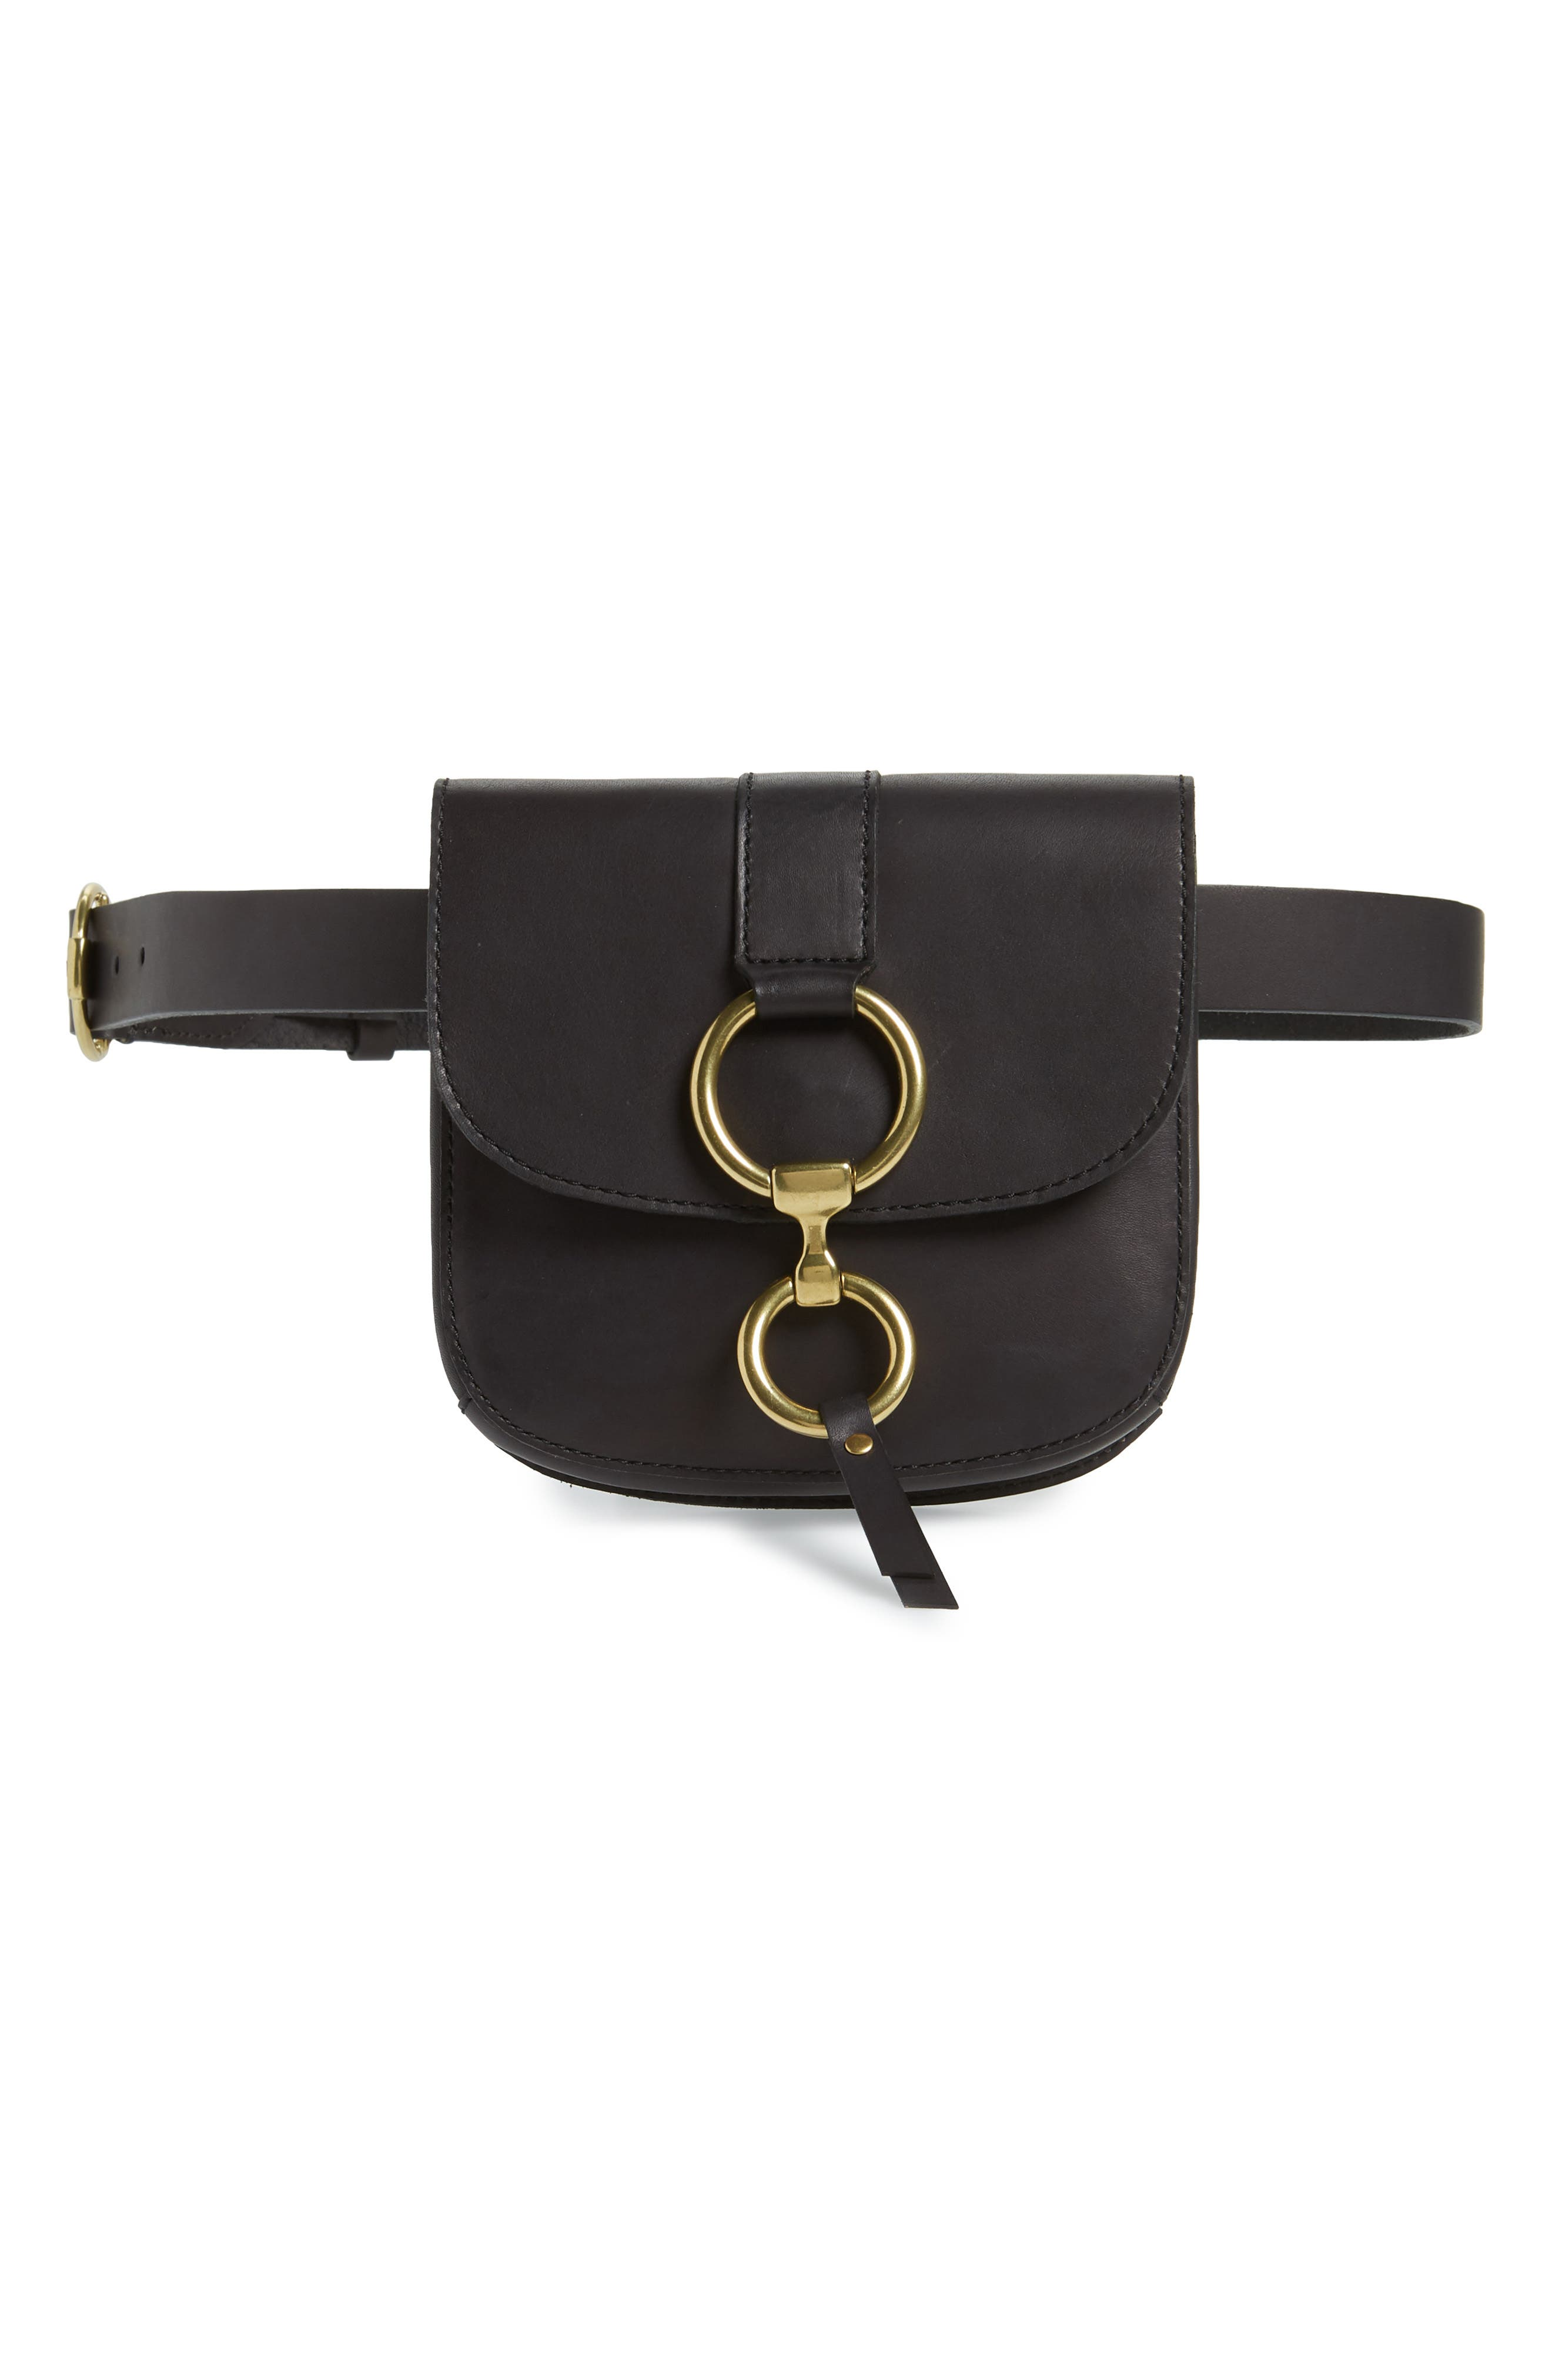 Leather Belt Bag,                             Main thumbnail 1, color,                             BLACK/ ECRU STITCH